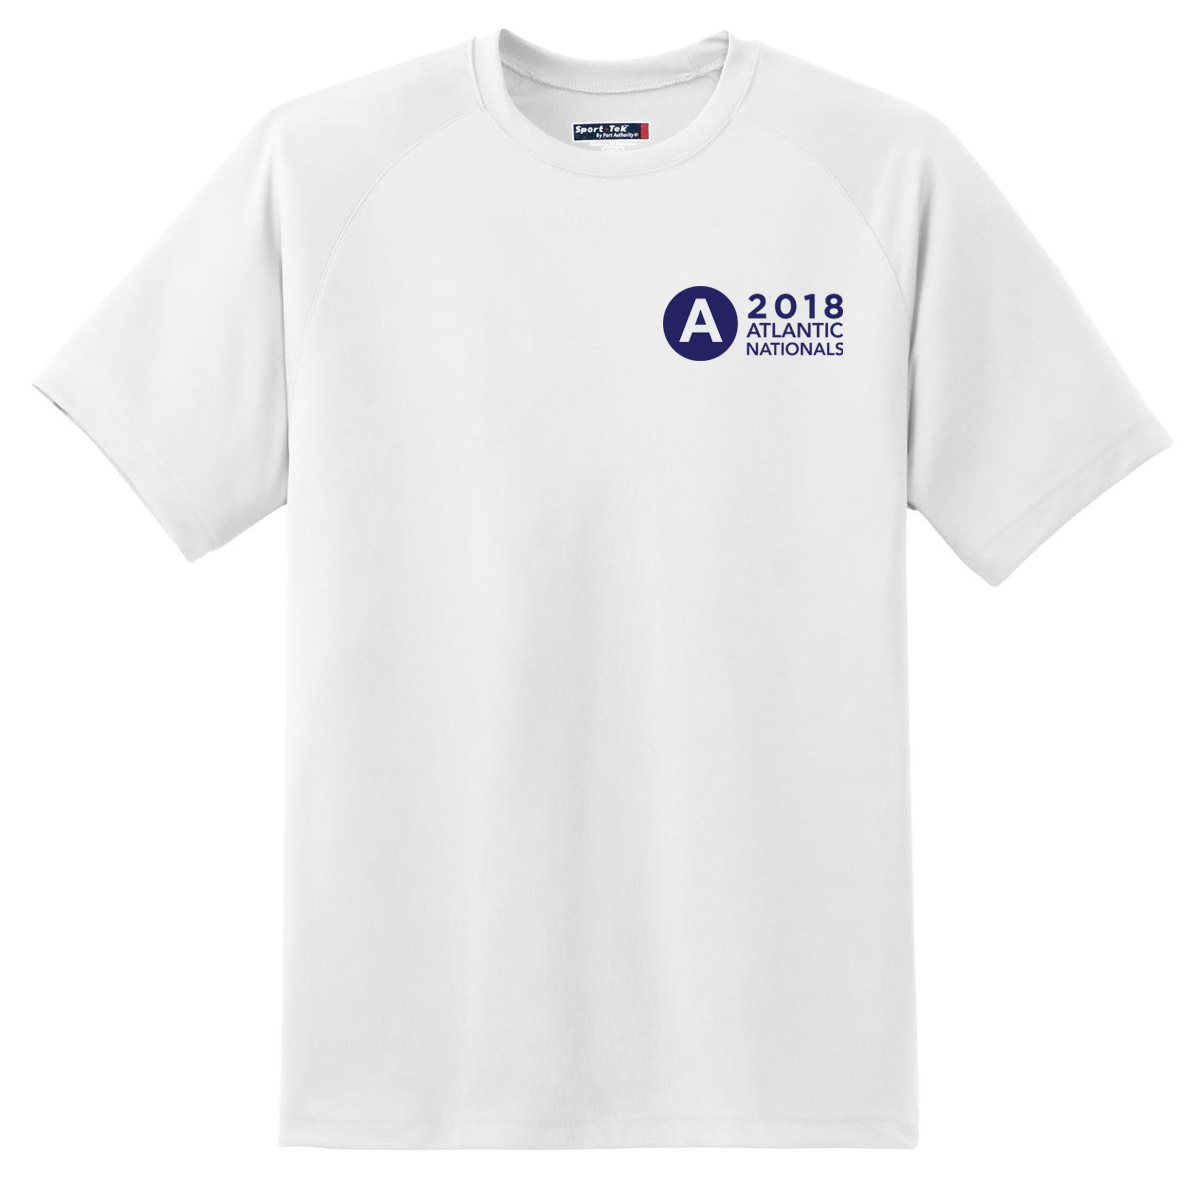 ATLANTIC NATIONALS - M'S S/S TECH TEE